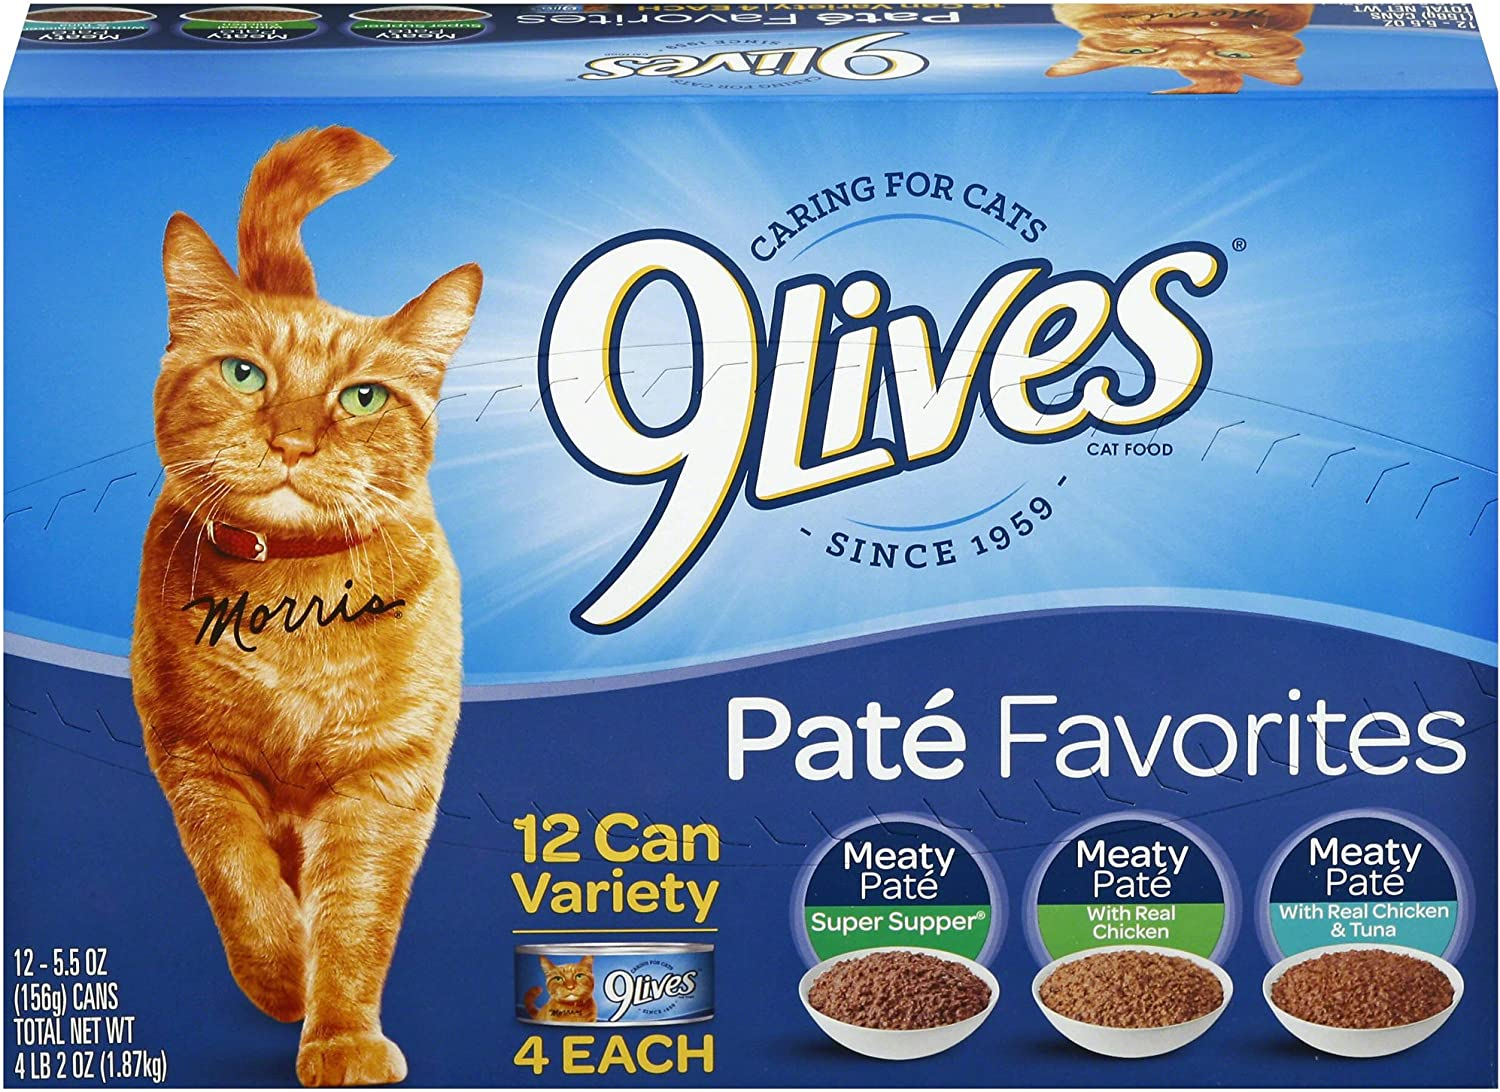 9 Lives Pate Favorites Variety Pack Canned Cat Food, Pack Of 12 Cans, 5.5 Ounce